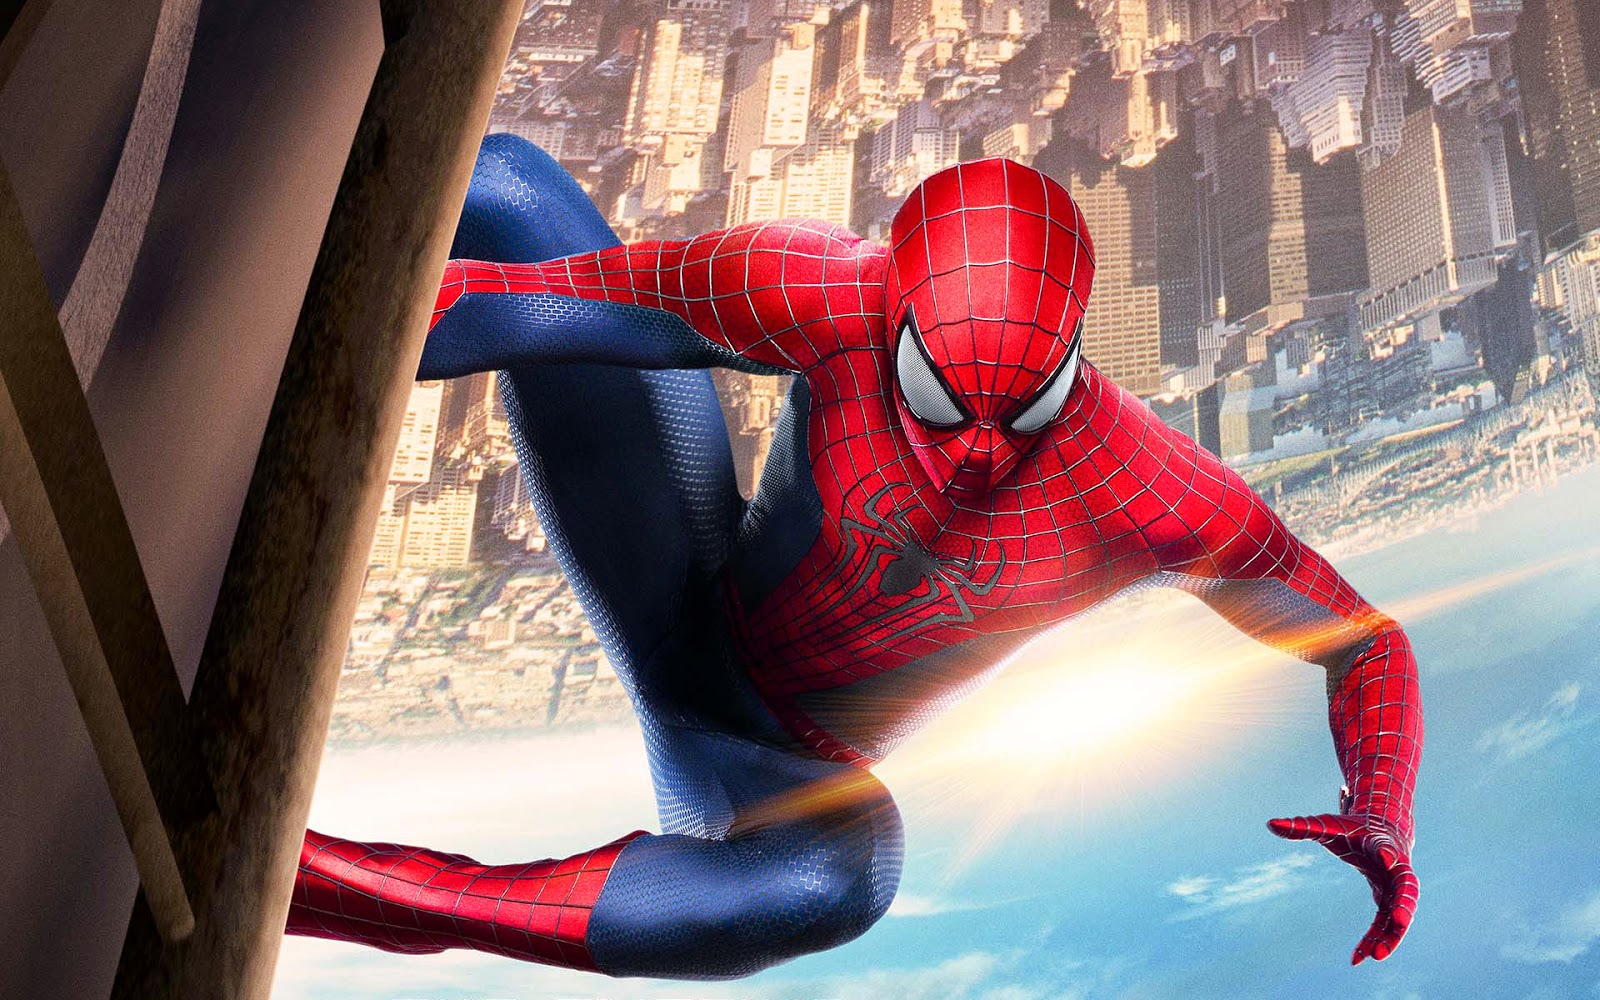 Spiderman Live Wallpaper Hd: THE AMAZING SPIDER-MAN 2